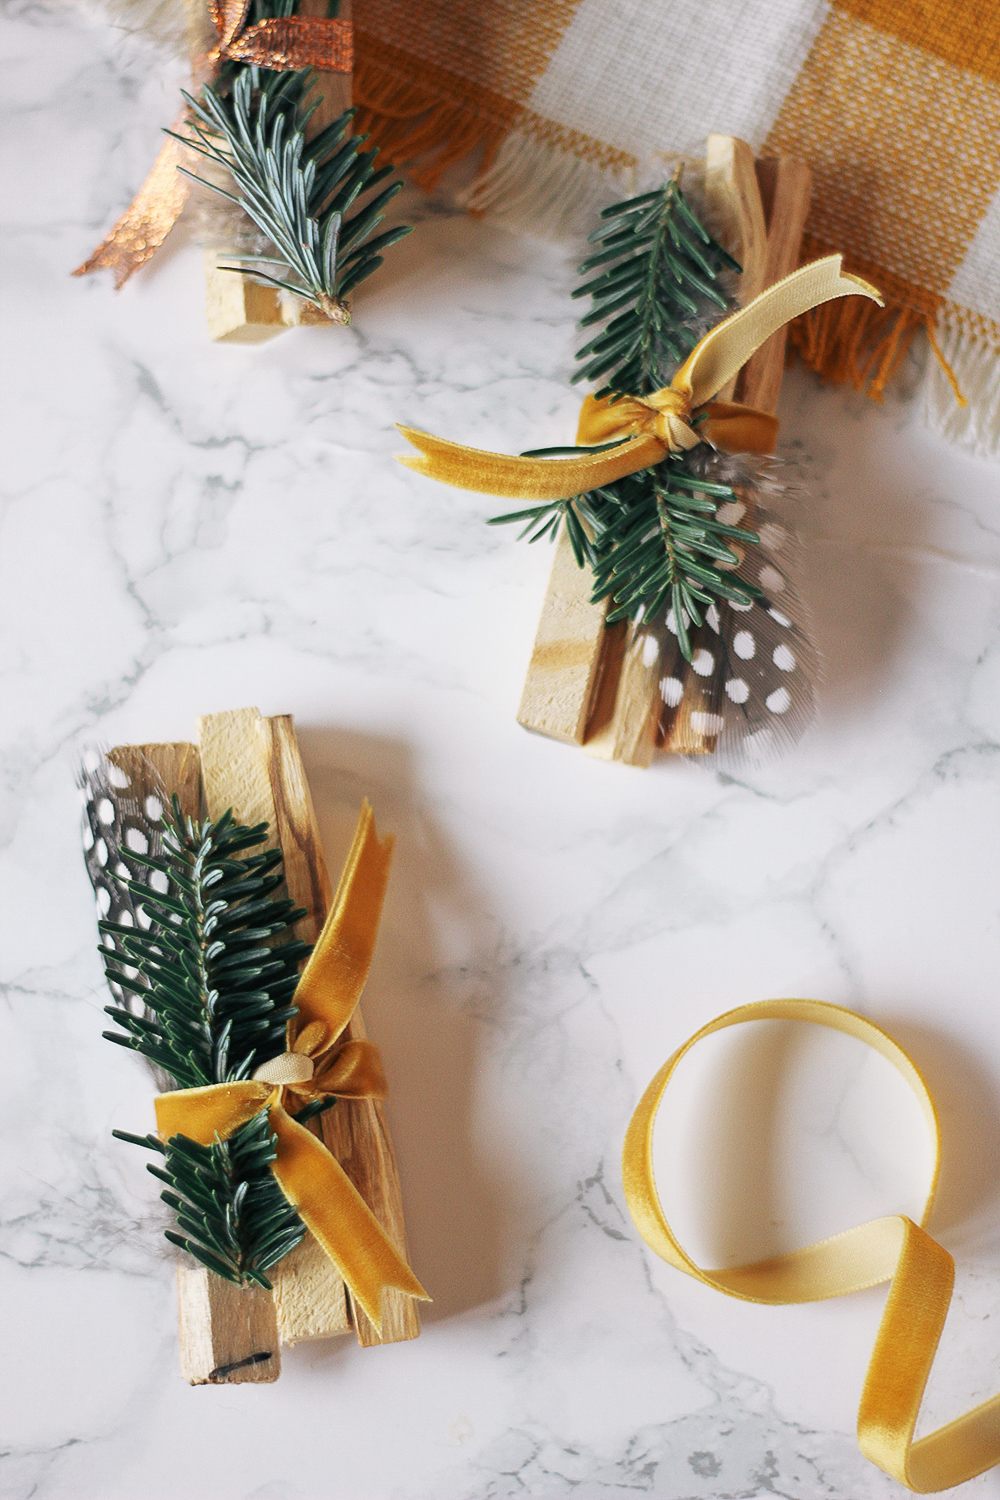 The perfect last-minute gift, these palo santo bundles are super chic and smell great! Get the full tutorial at HomemadeBanana.com #holiday #diygift